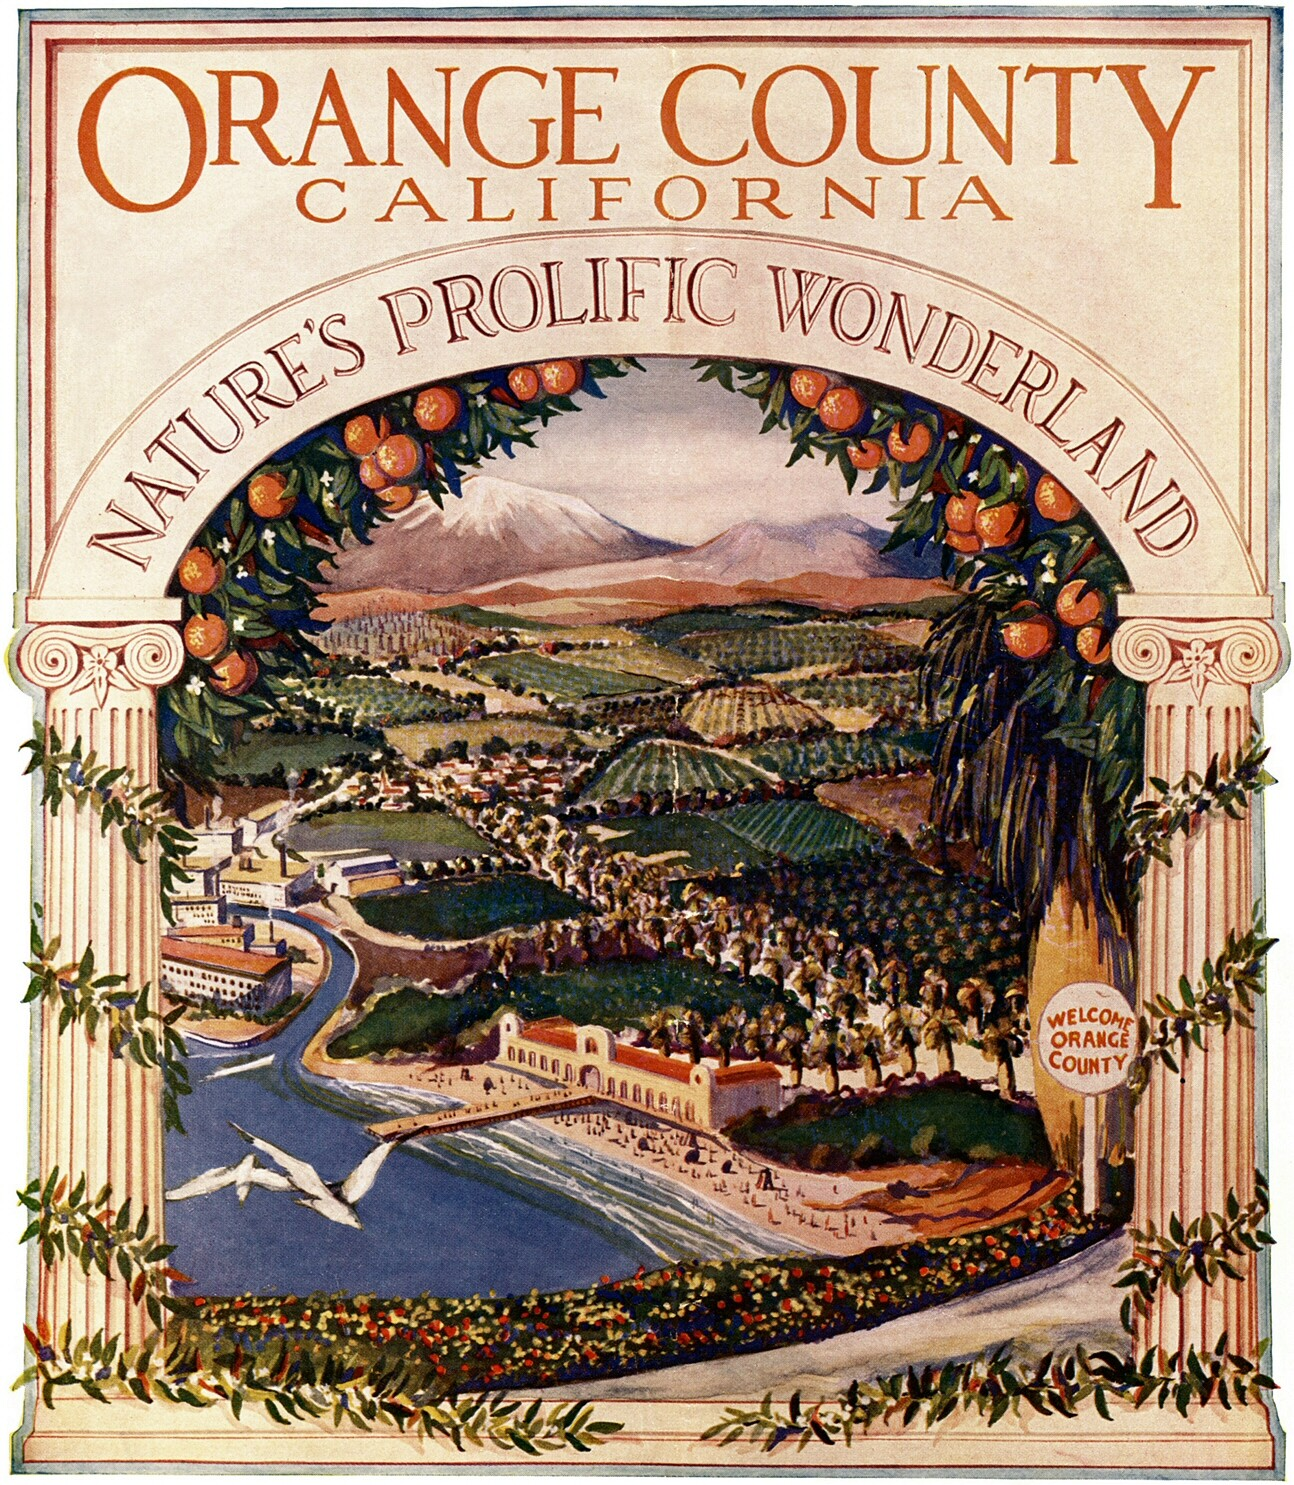 Orange County, California: Nature's Prolific Wonderland (1926)